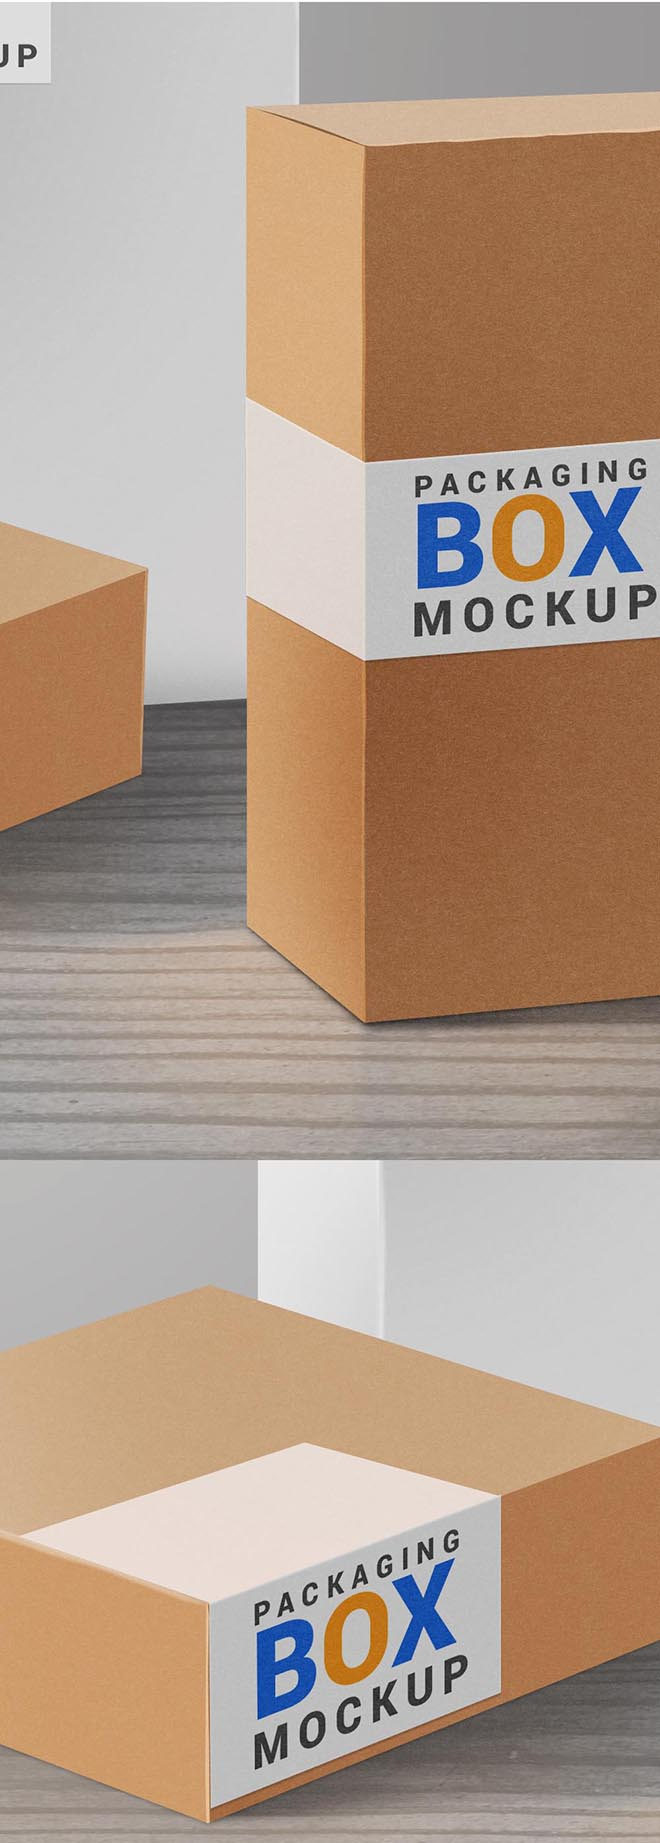 Free-Packaging-Boxes-Mockup-PSD